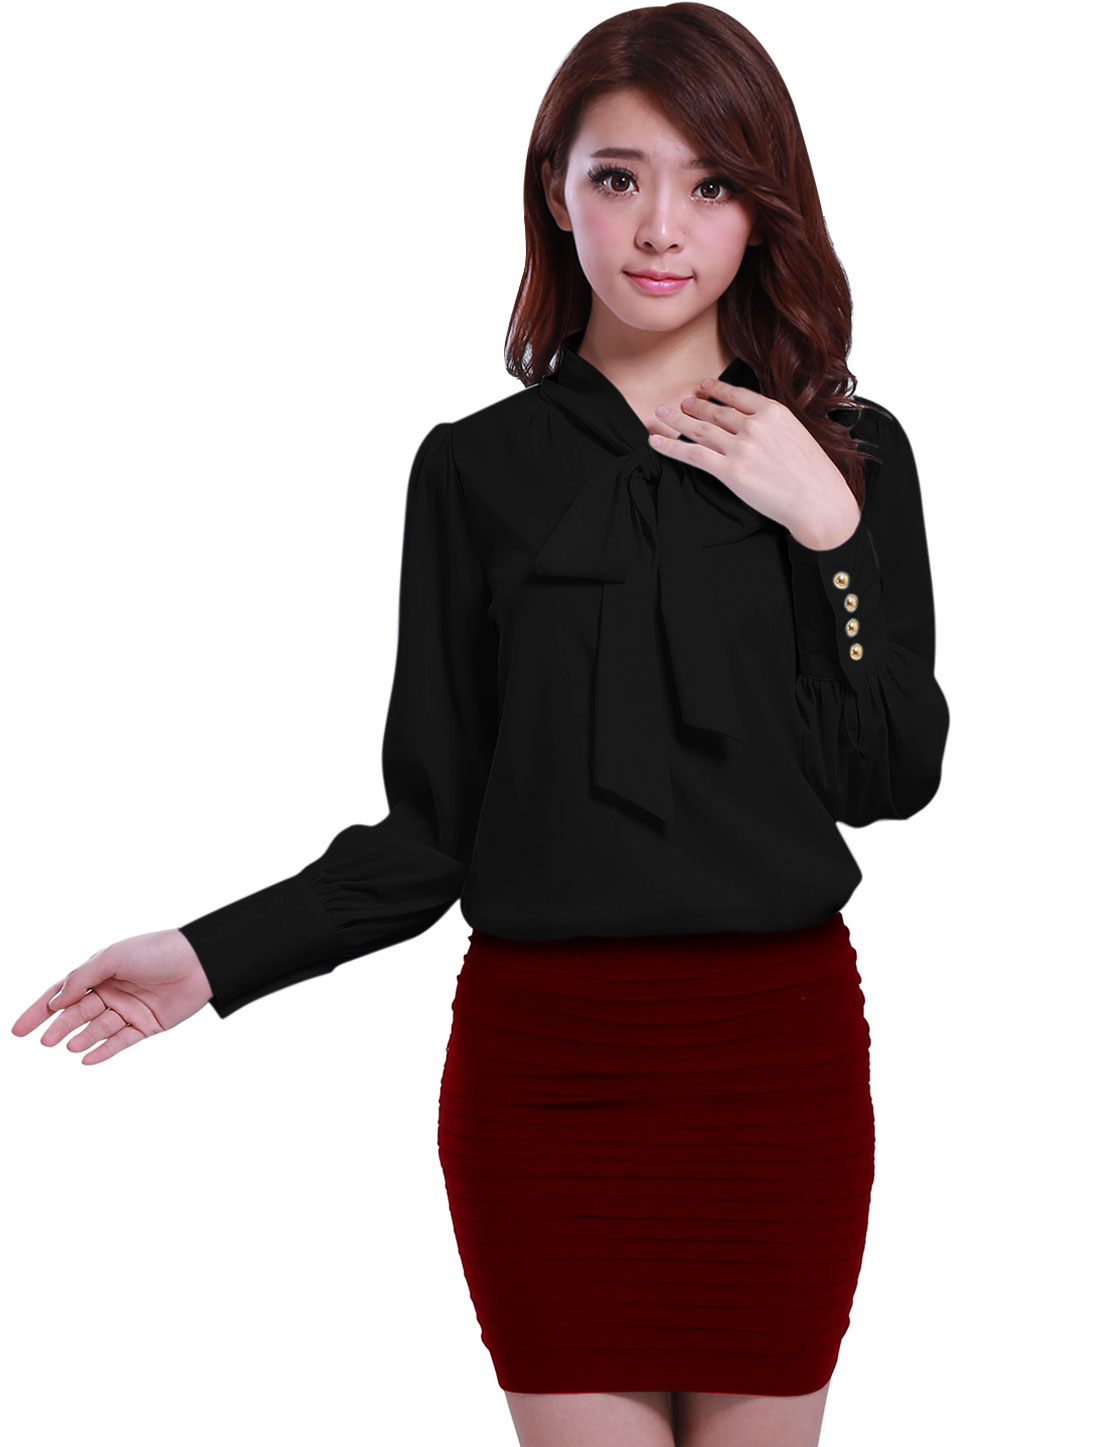 Woman Tie-bow Neck Puff Sleeve Buttoned Cuff Black Chiffon Blouse S